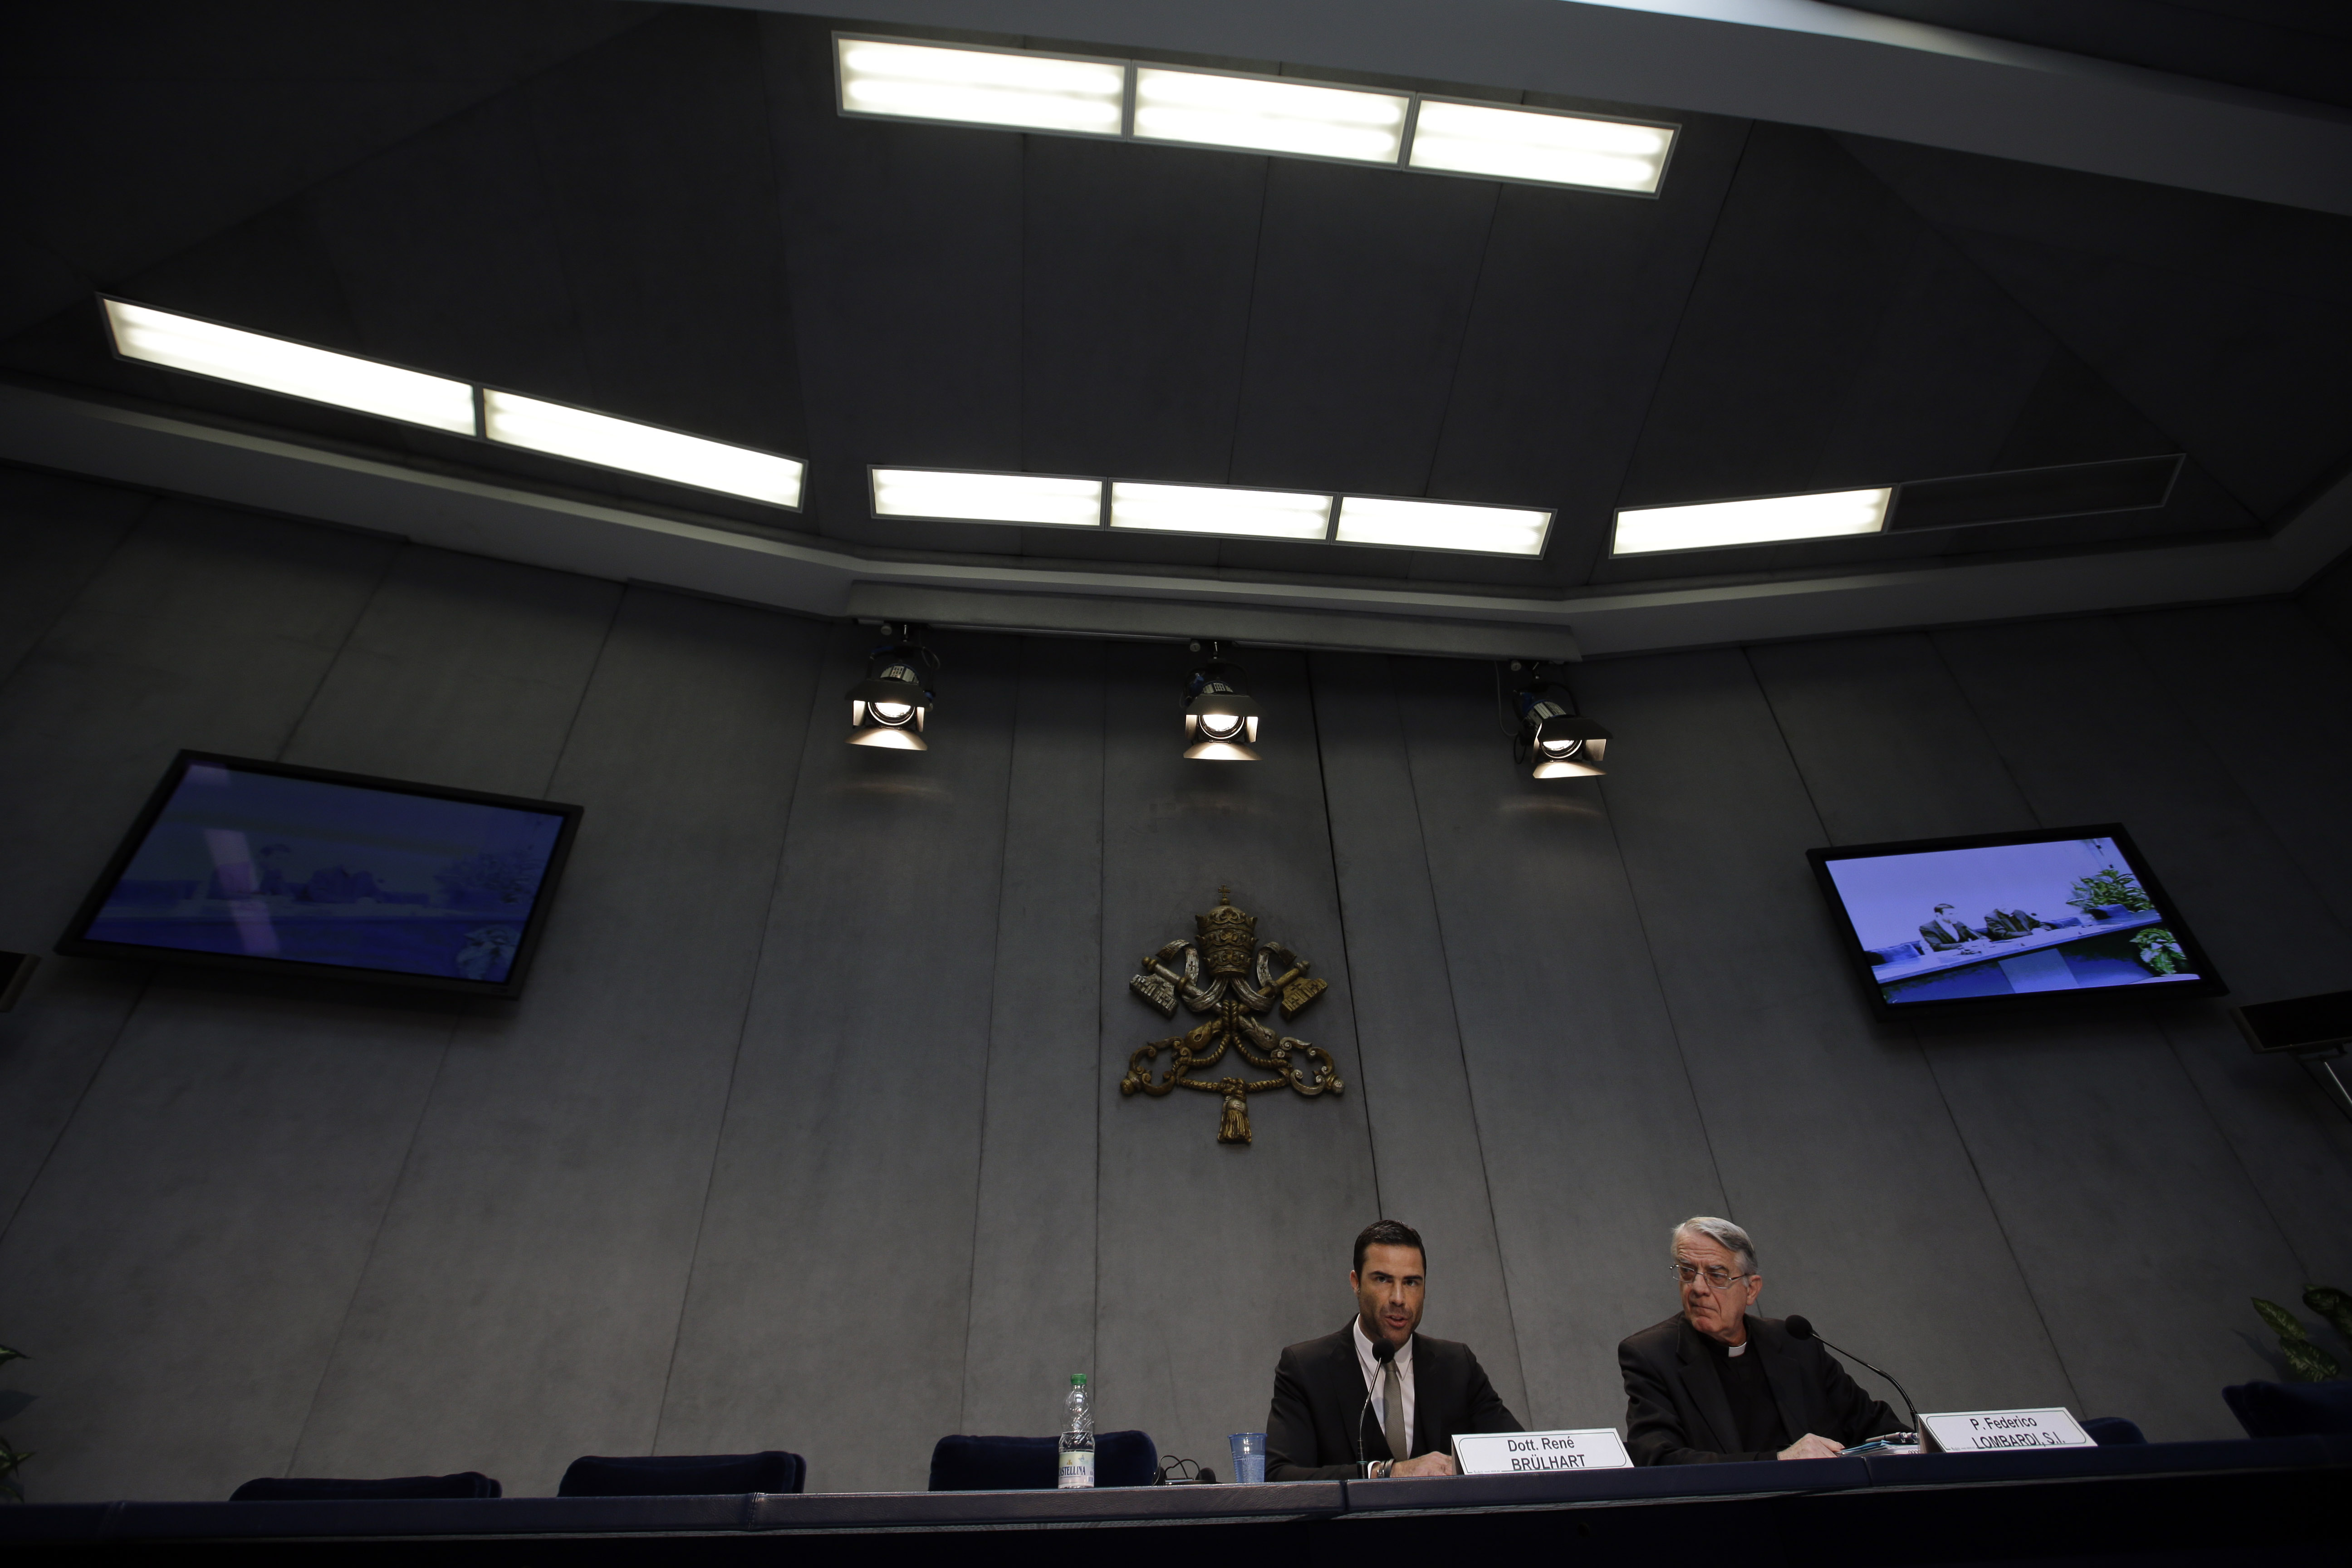 FILE - Rene Brulhart, director of the Financial Information Authority, an institution established to monitor the monetary and commercial activities of Vatican agencies, and Vatican spokesman Federico Lombardi, are seen at the Vatican, May 22, 2013.